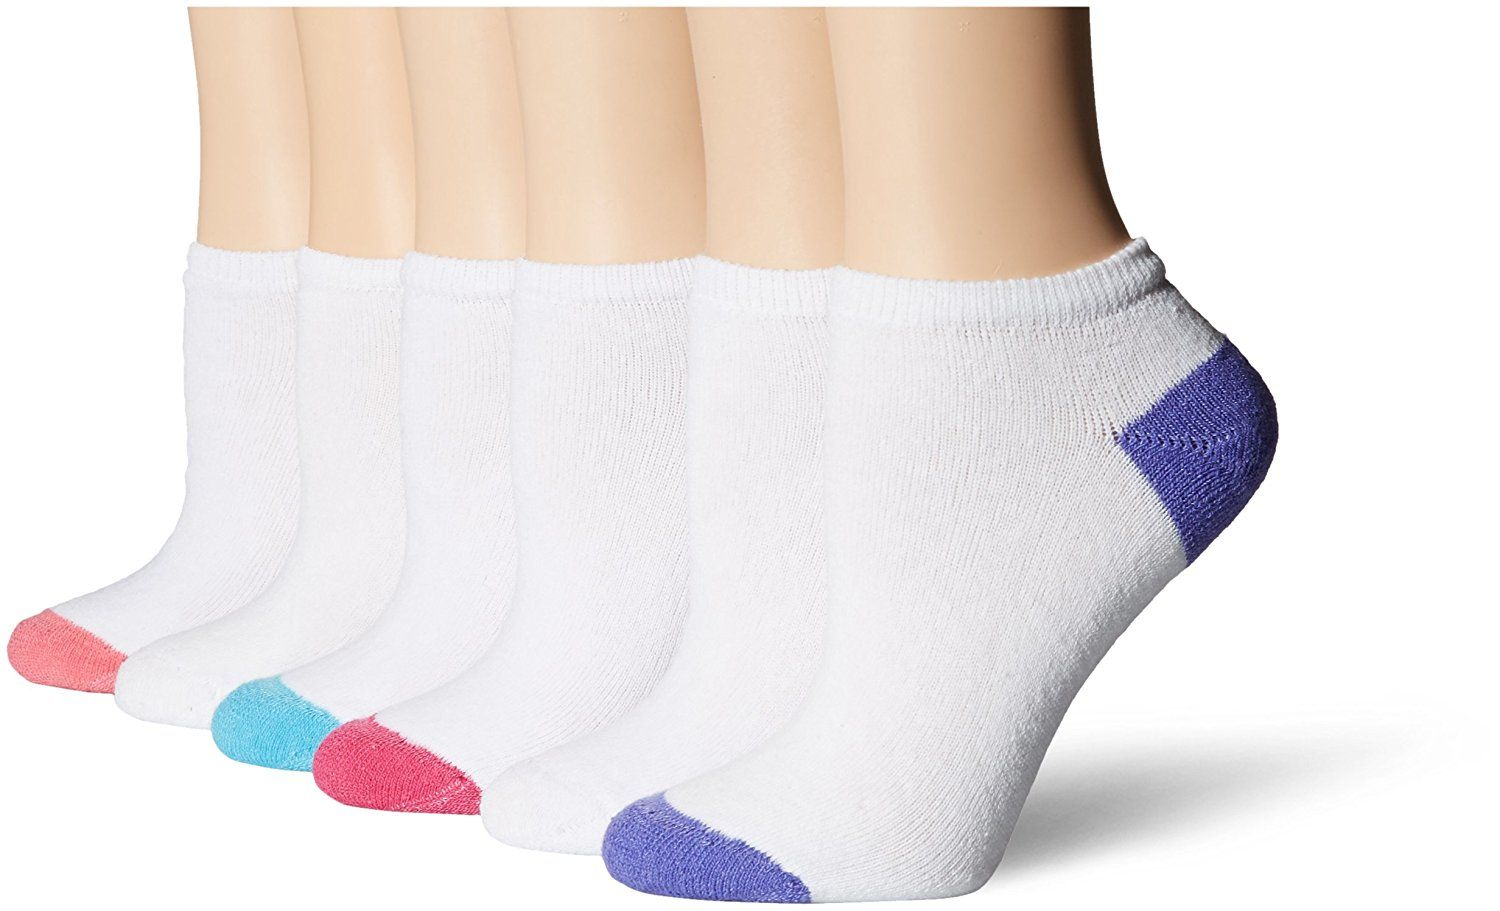 AirStep Women/'s No Show Low-Cut Athletic Socks with Cushion Sole 12 Pair